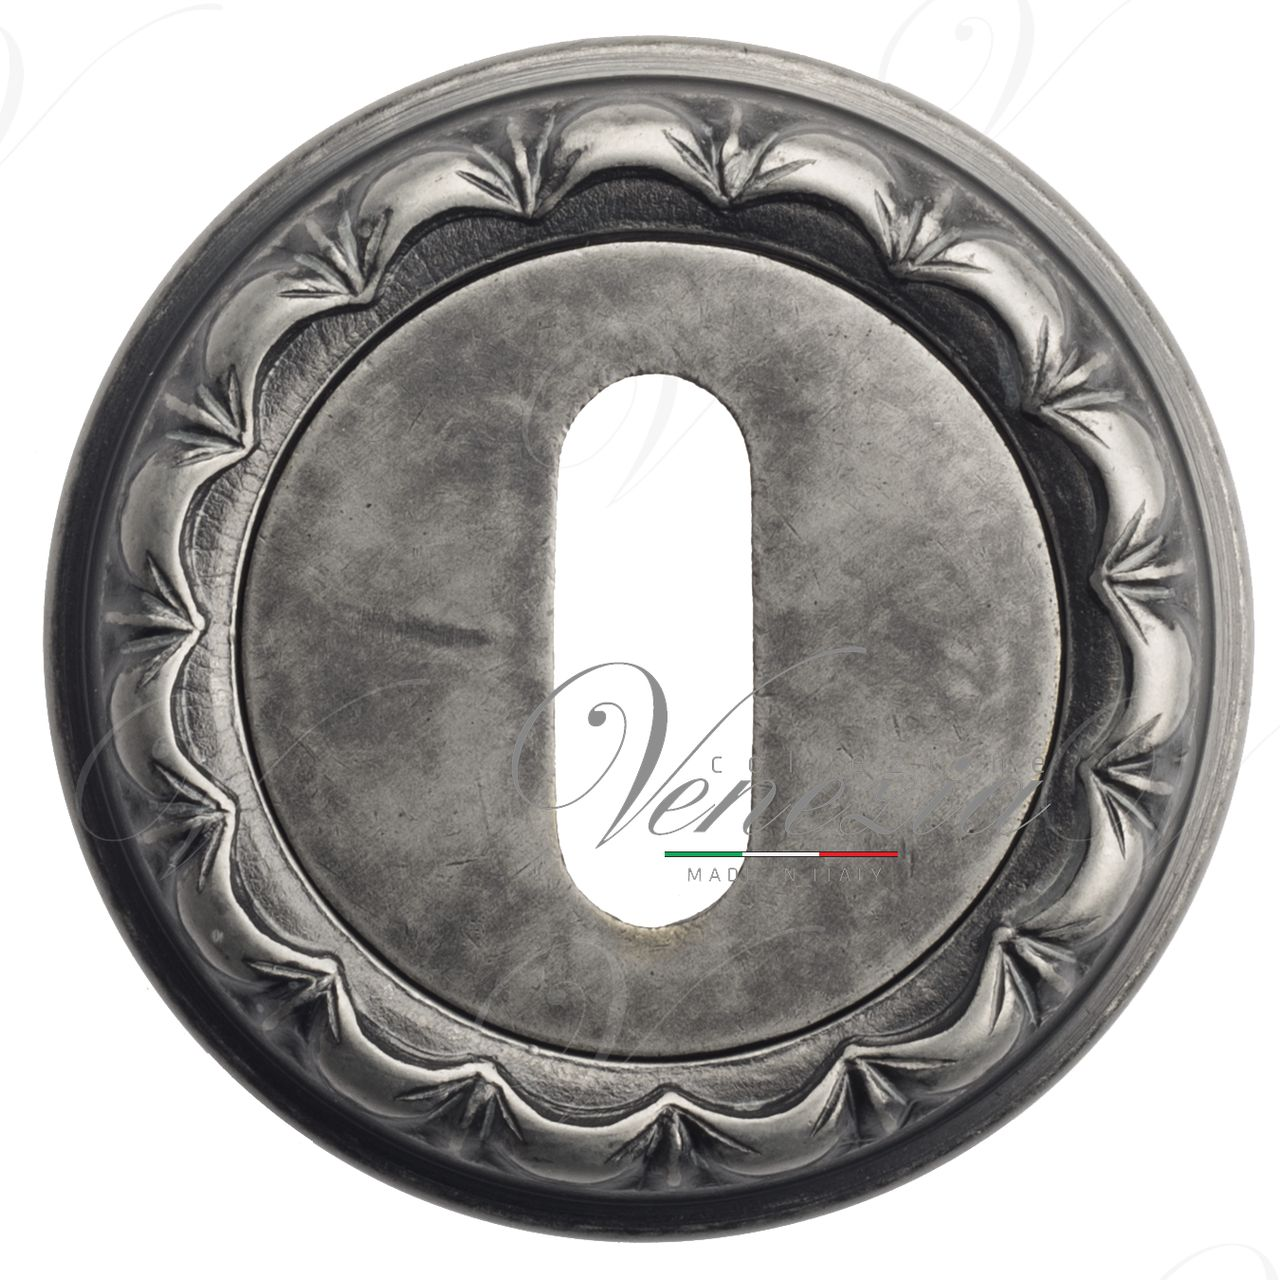 Keyhole Escutcheon Venezia KEY-1 D2 Antique Silver